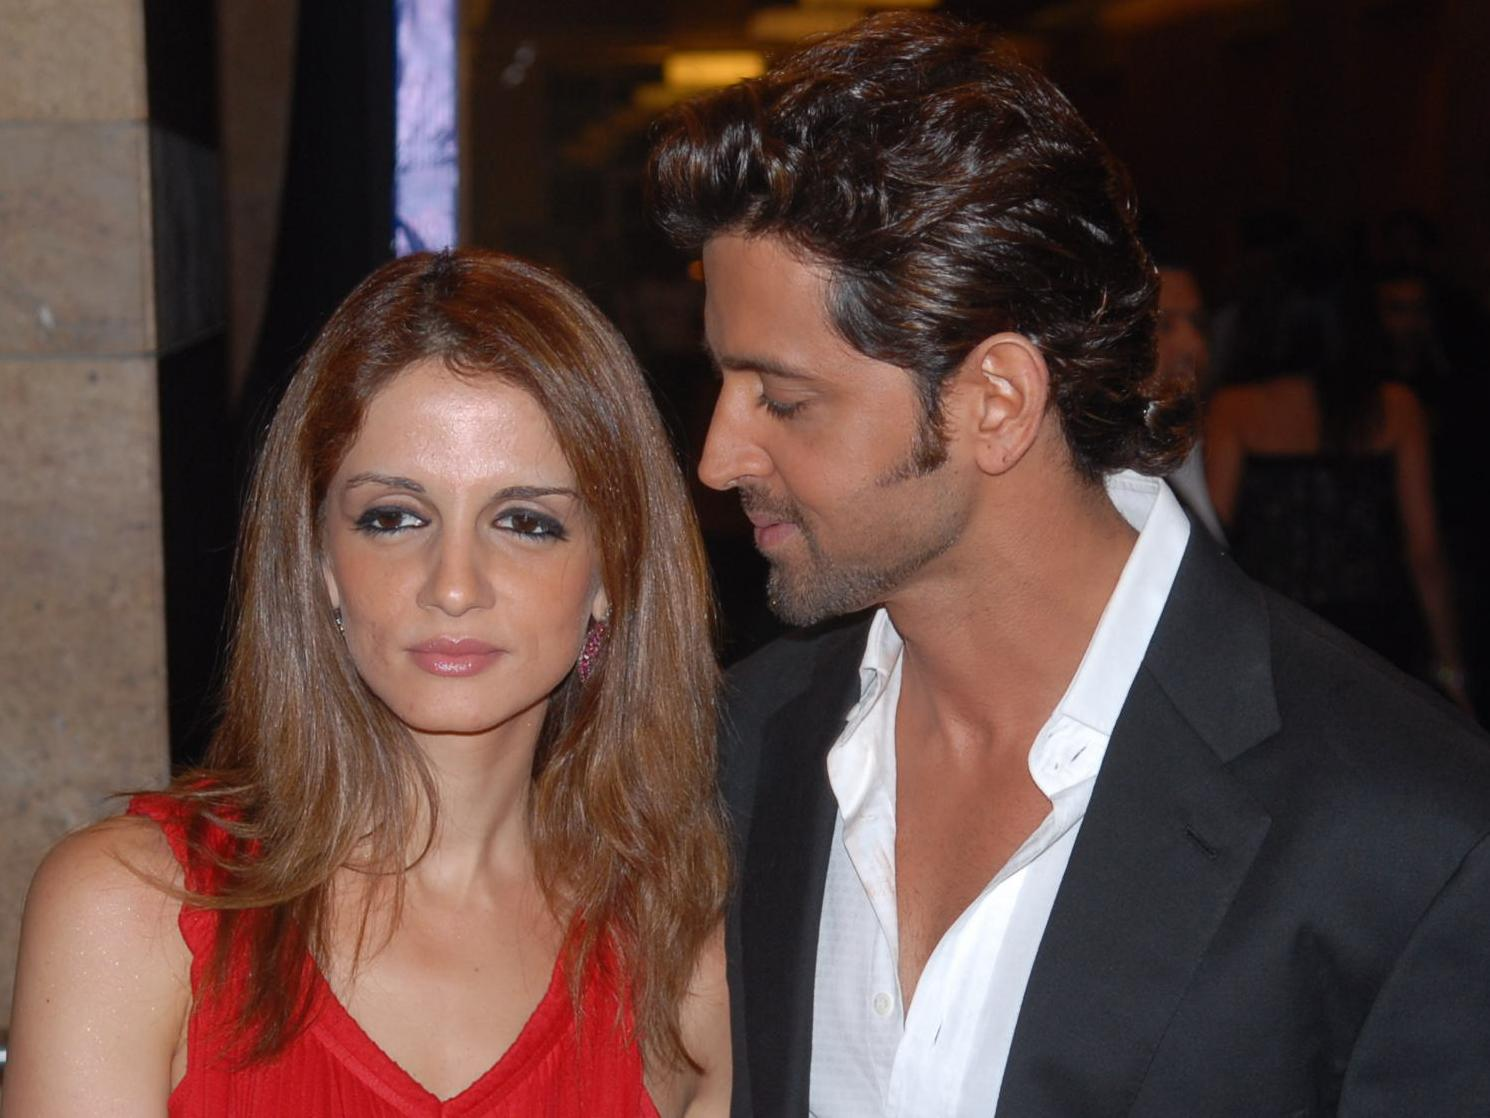 Hrithik & Sussanne's divorce has shocked all, but the relationship  had seen many happy days. Here are pictures from those times...